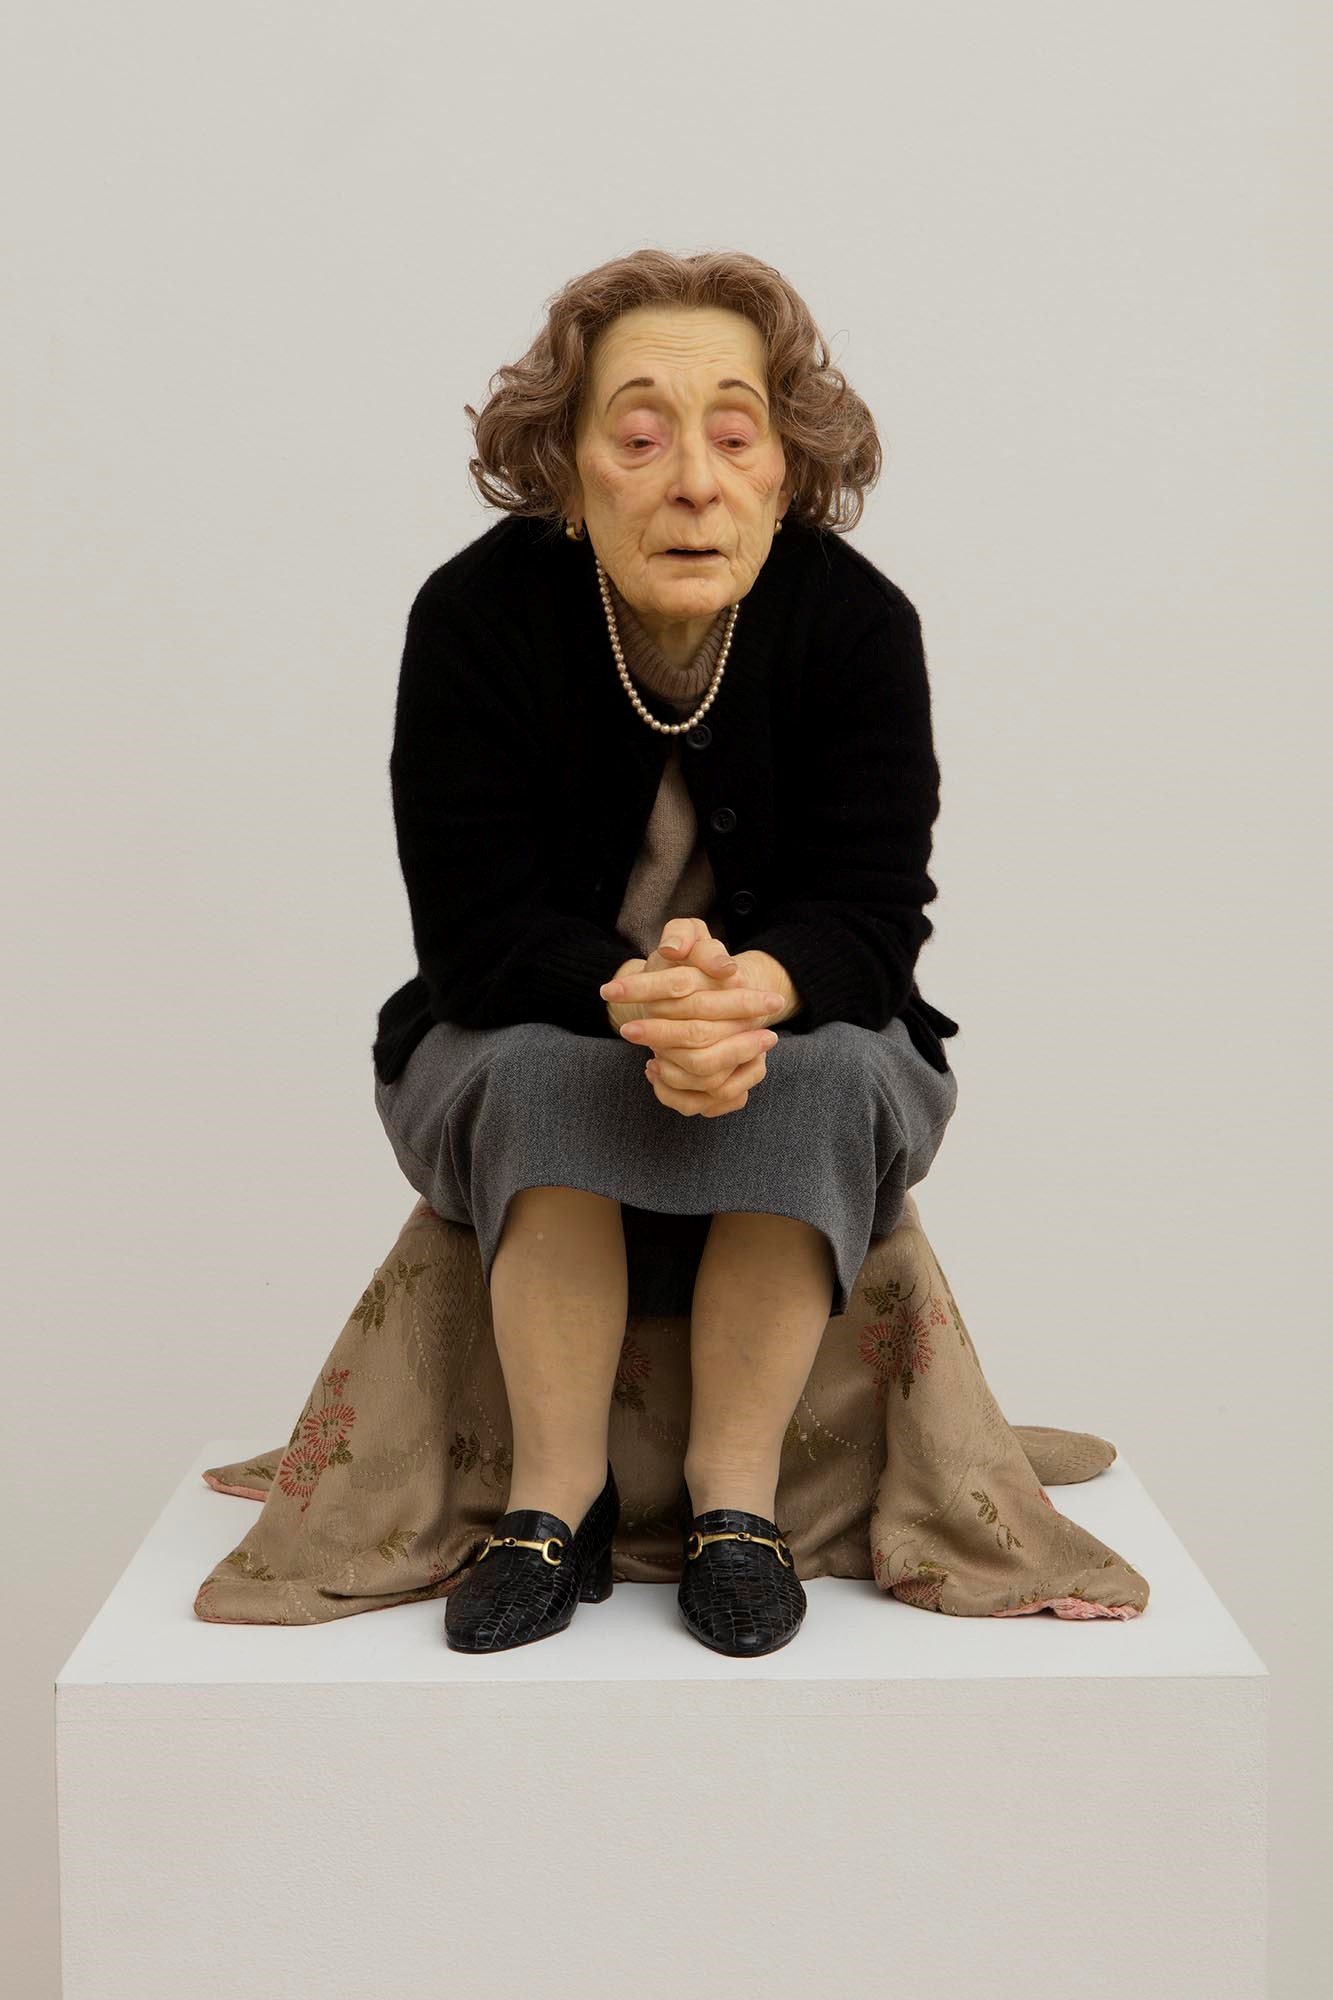 Conceived by Ron Mueck and executed by Sam Jinks this sculpture is ...